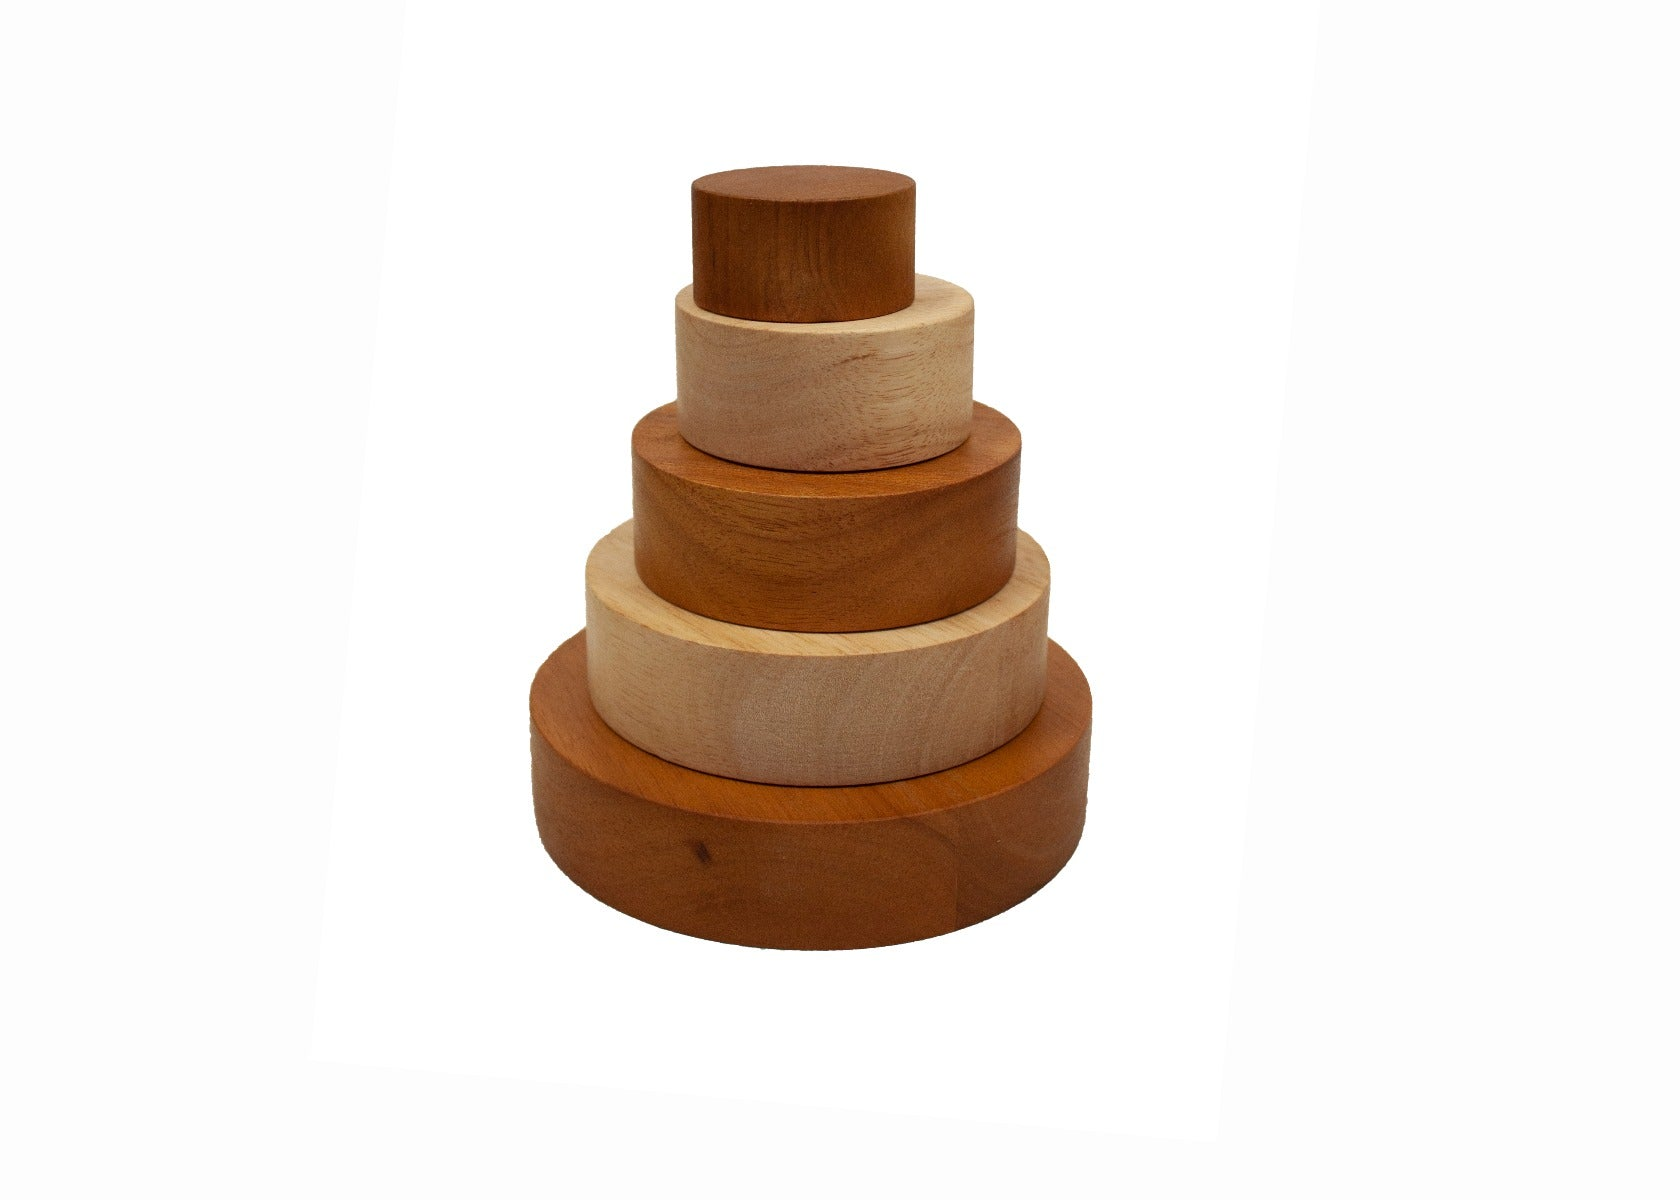 Natural 2 tone Stacking and Nesting Bowls - The Little Interior